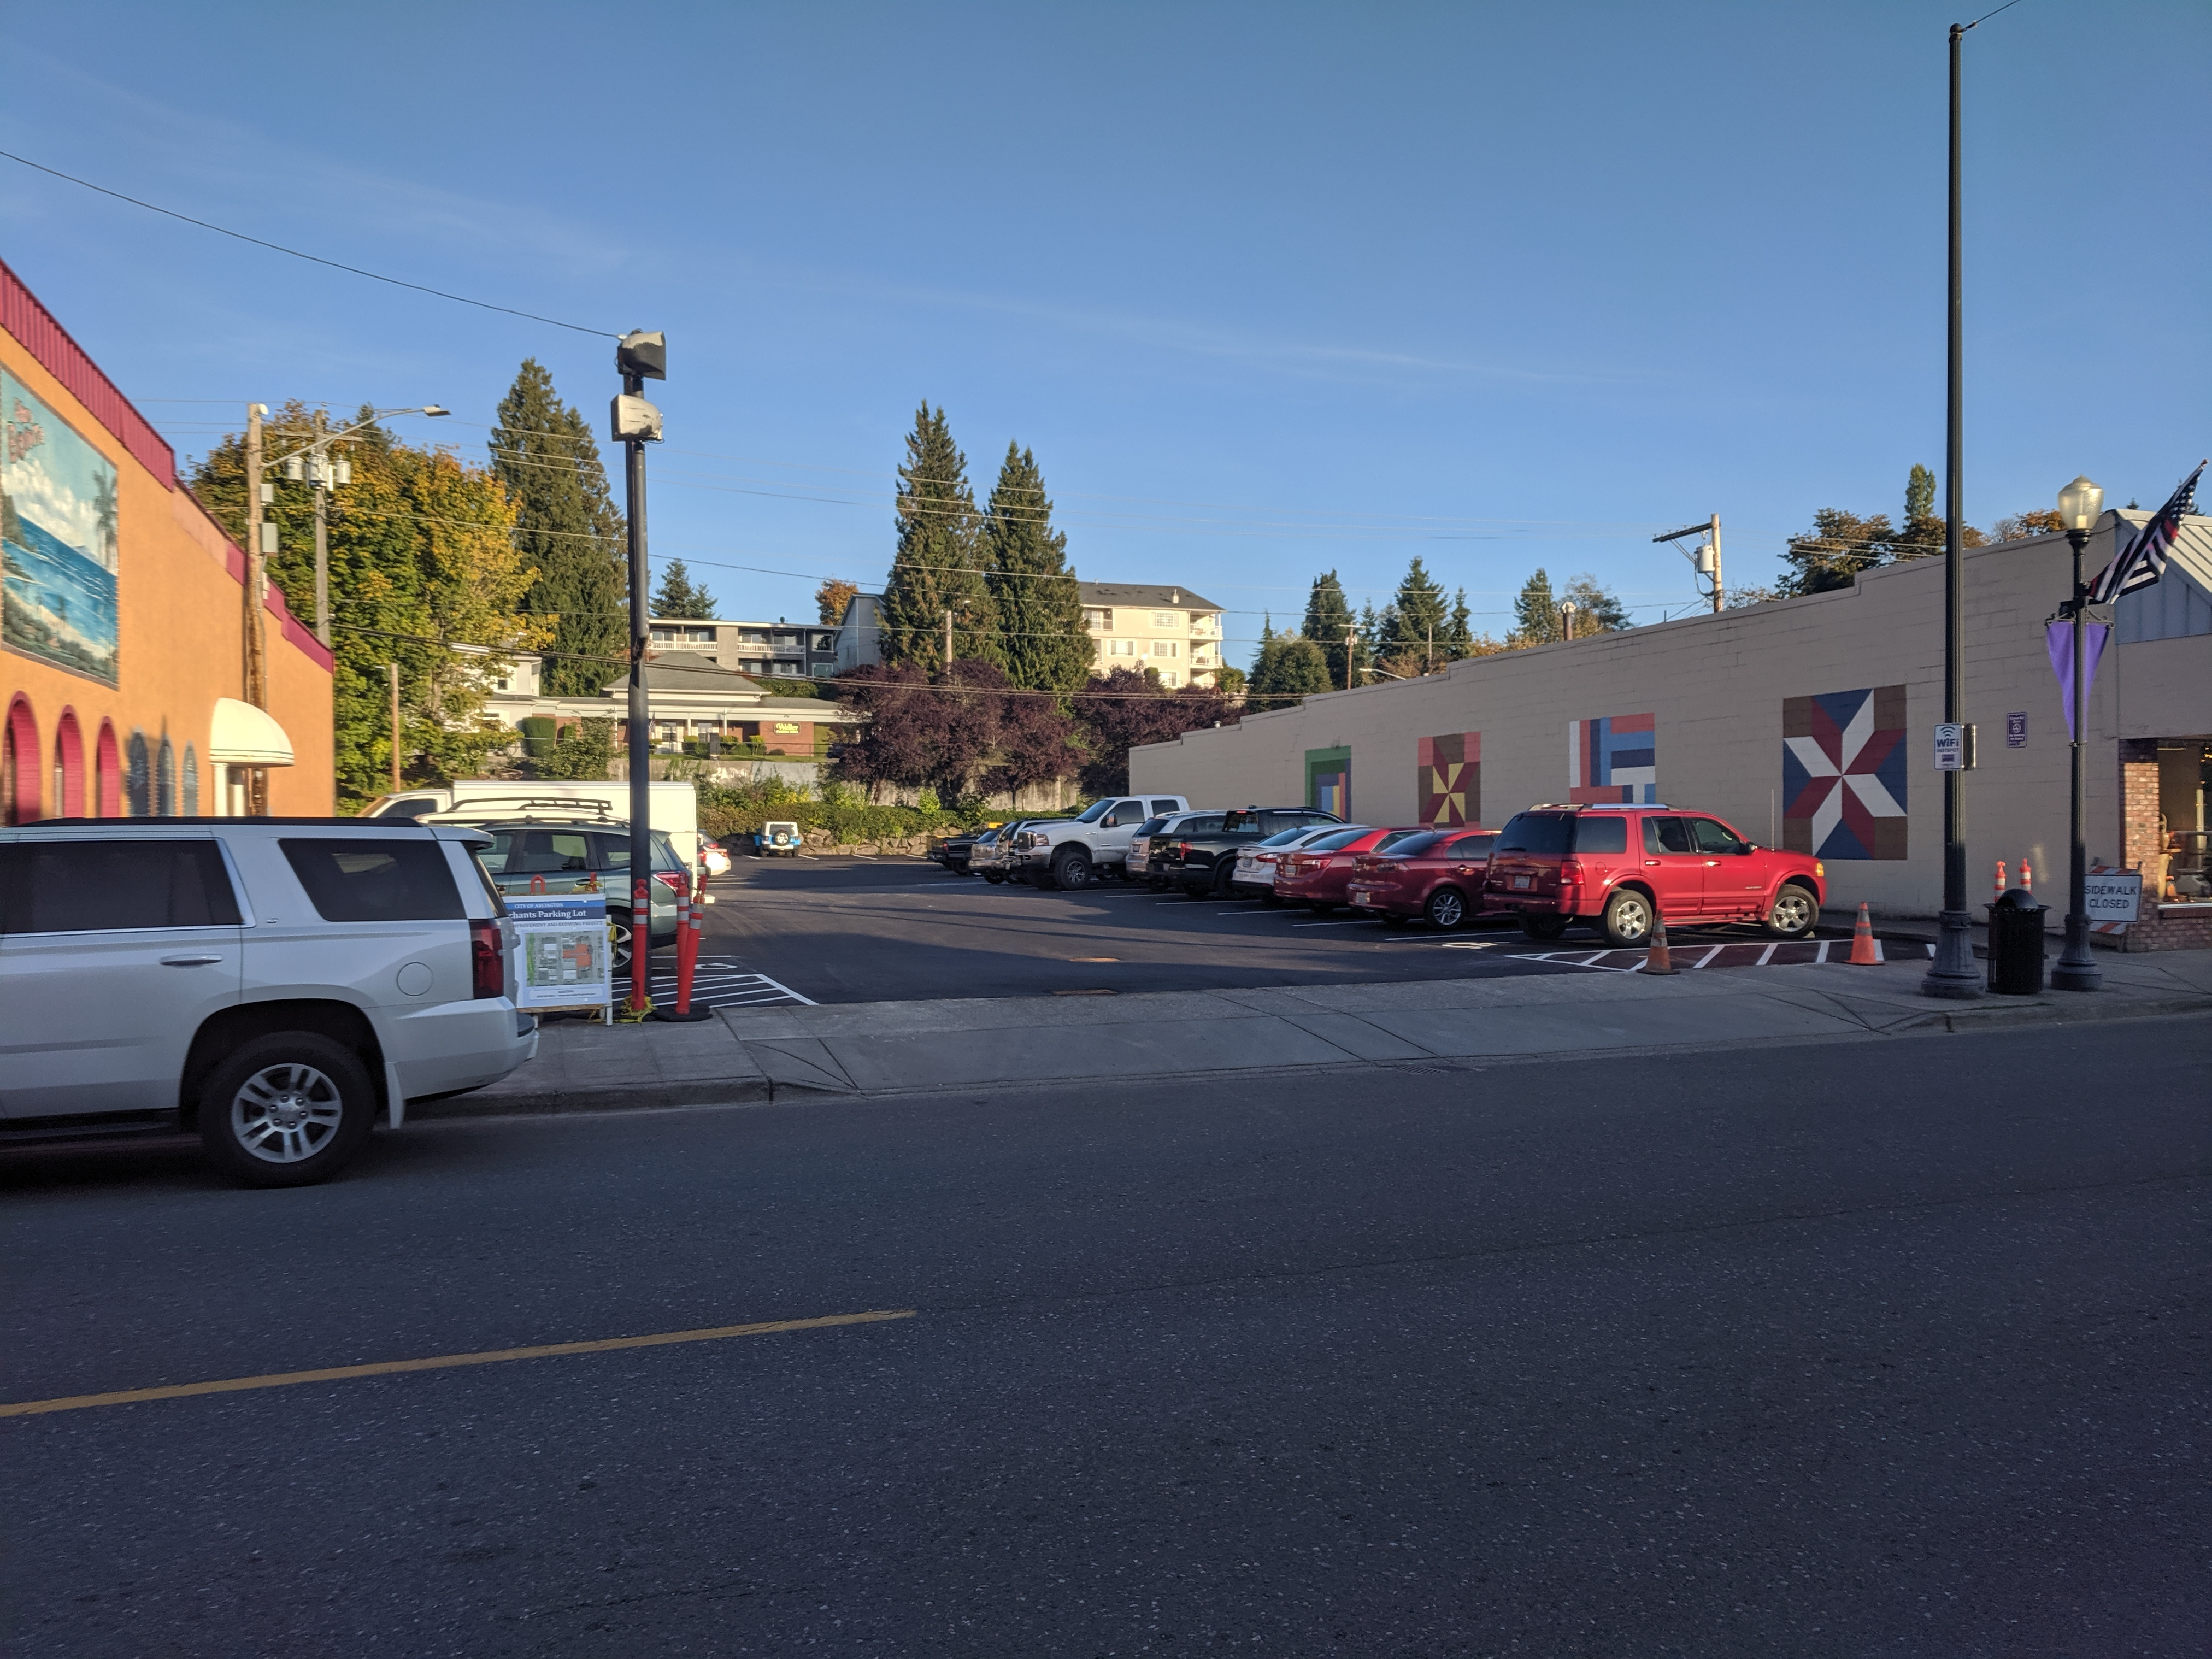 Photo of Merchant Parking Lot with new pavement and parking space striping